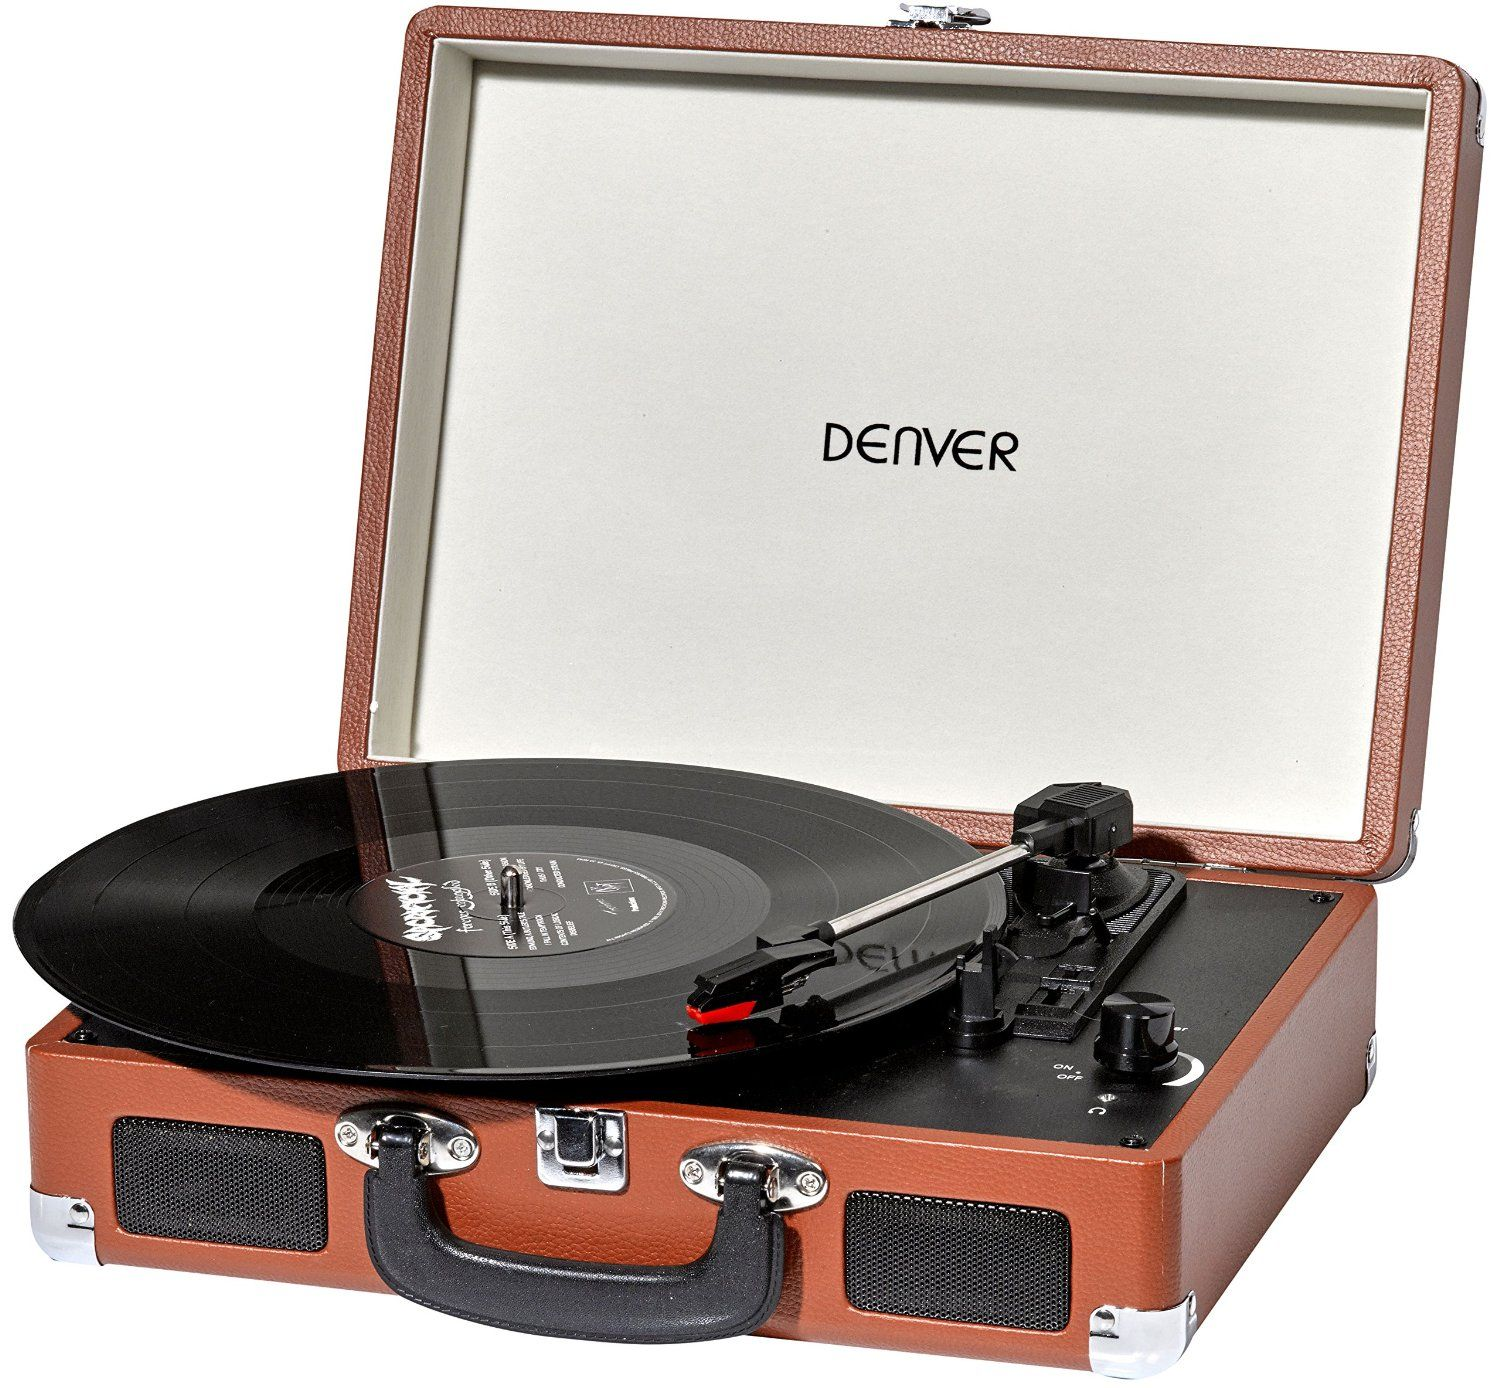 Denver Vpl 120 This Affordable Briefcase Vinyl Record Player Has A Cool Retro Design And Style And Comes In A Classic Bro Pladespiller Vinylplader Hojttalere